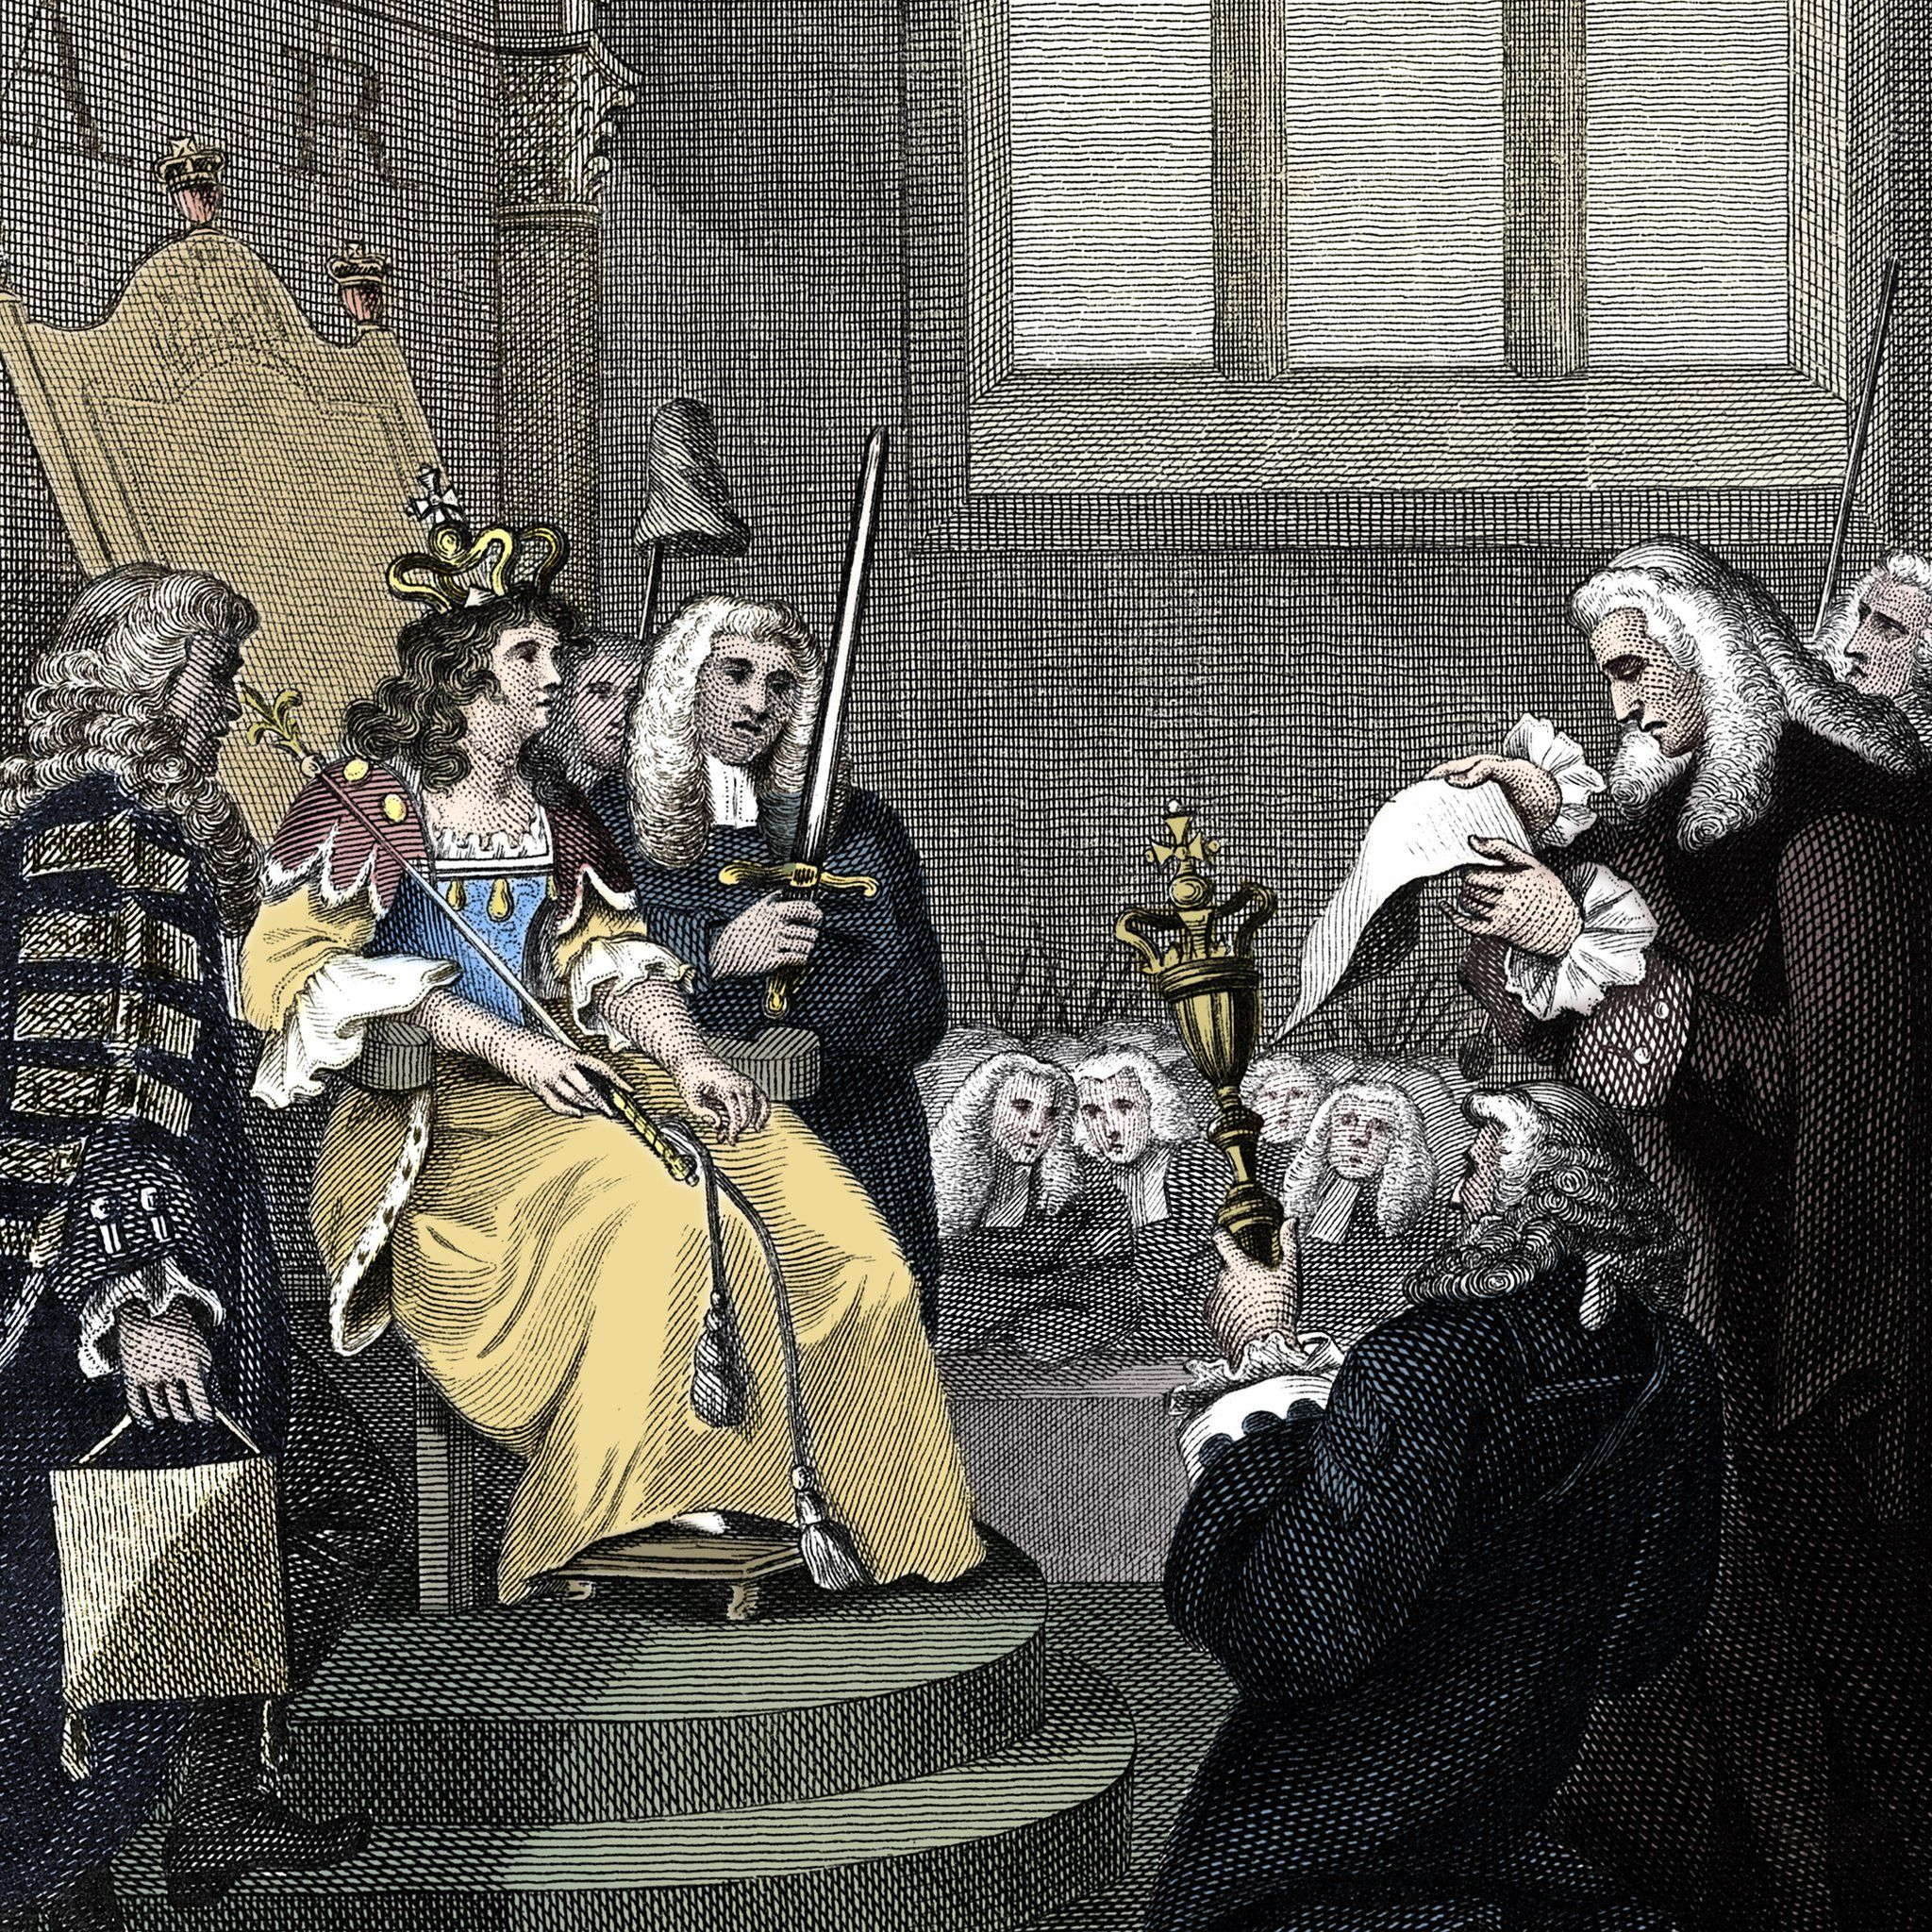 The Acts of Union between England and Scotland being read before Queen Anne, 1707.